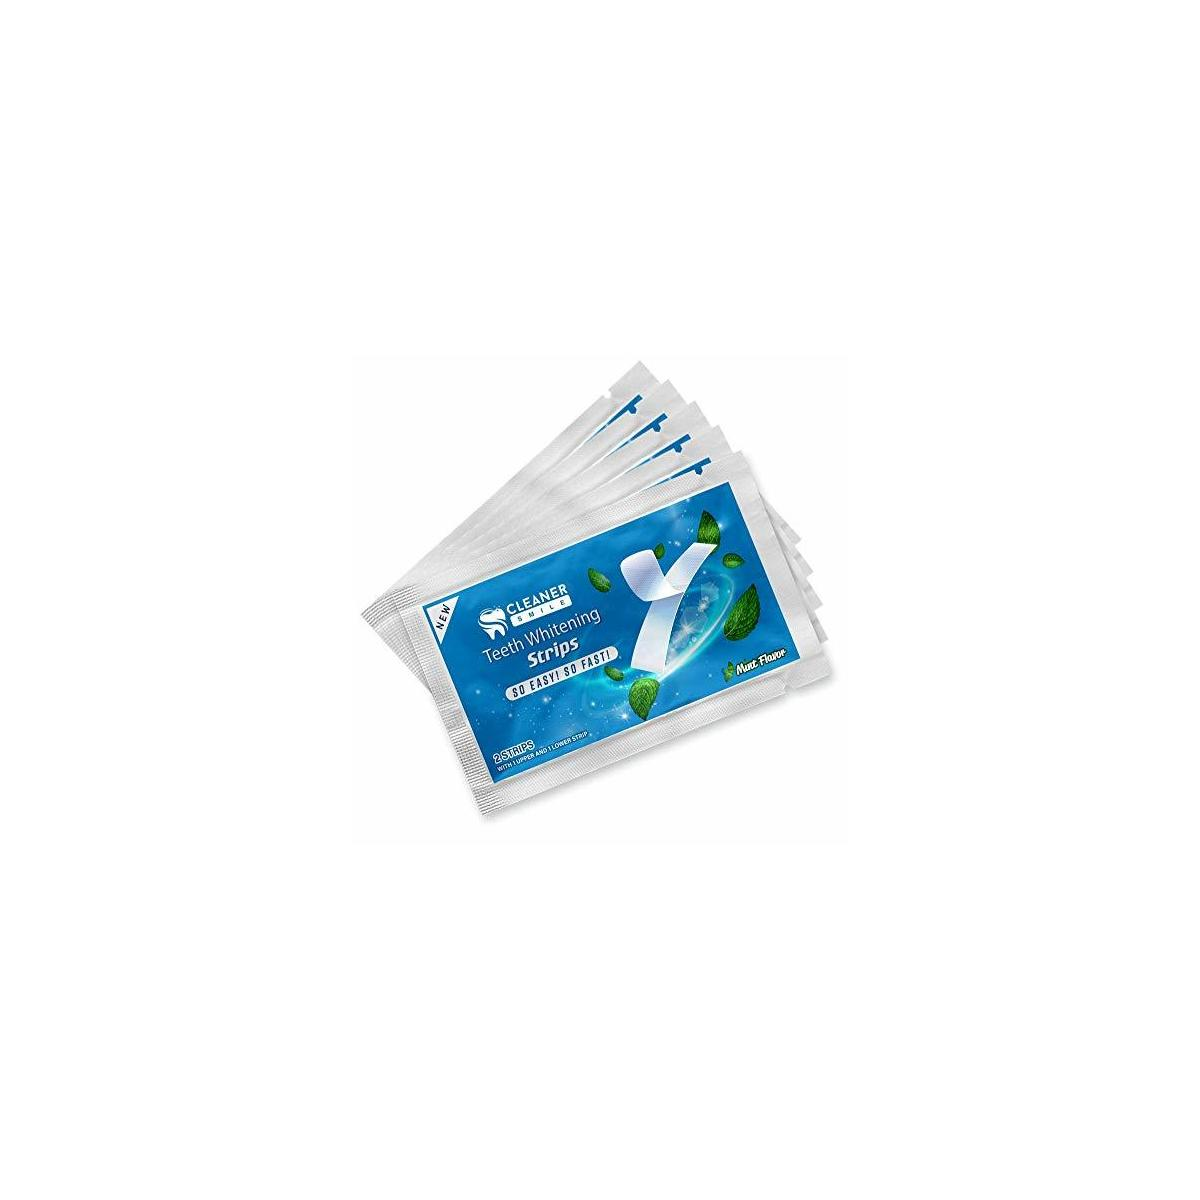 Cleaner Smile | Whitening Teeth Strips | Professional Results and Mess Free (White)…